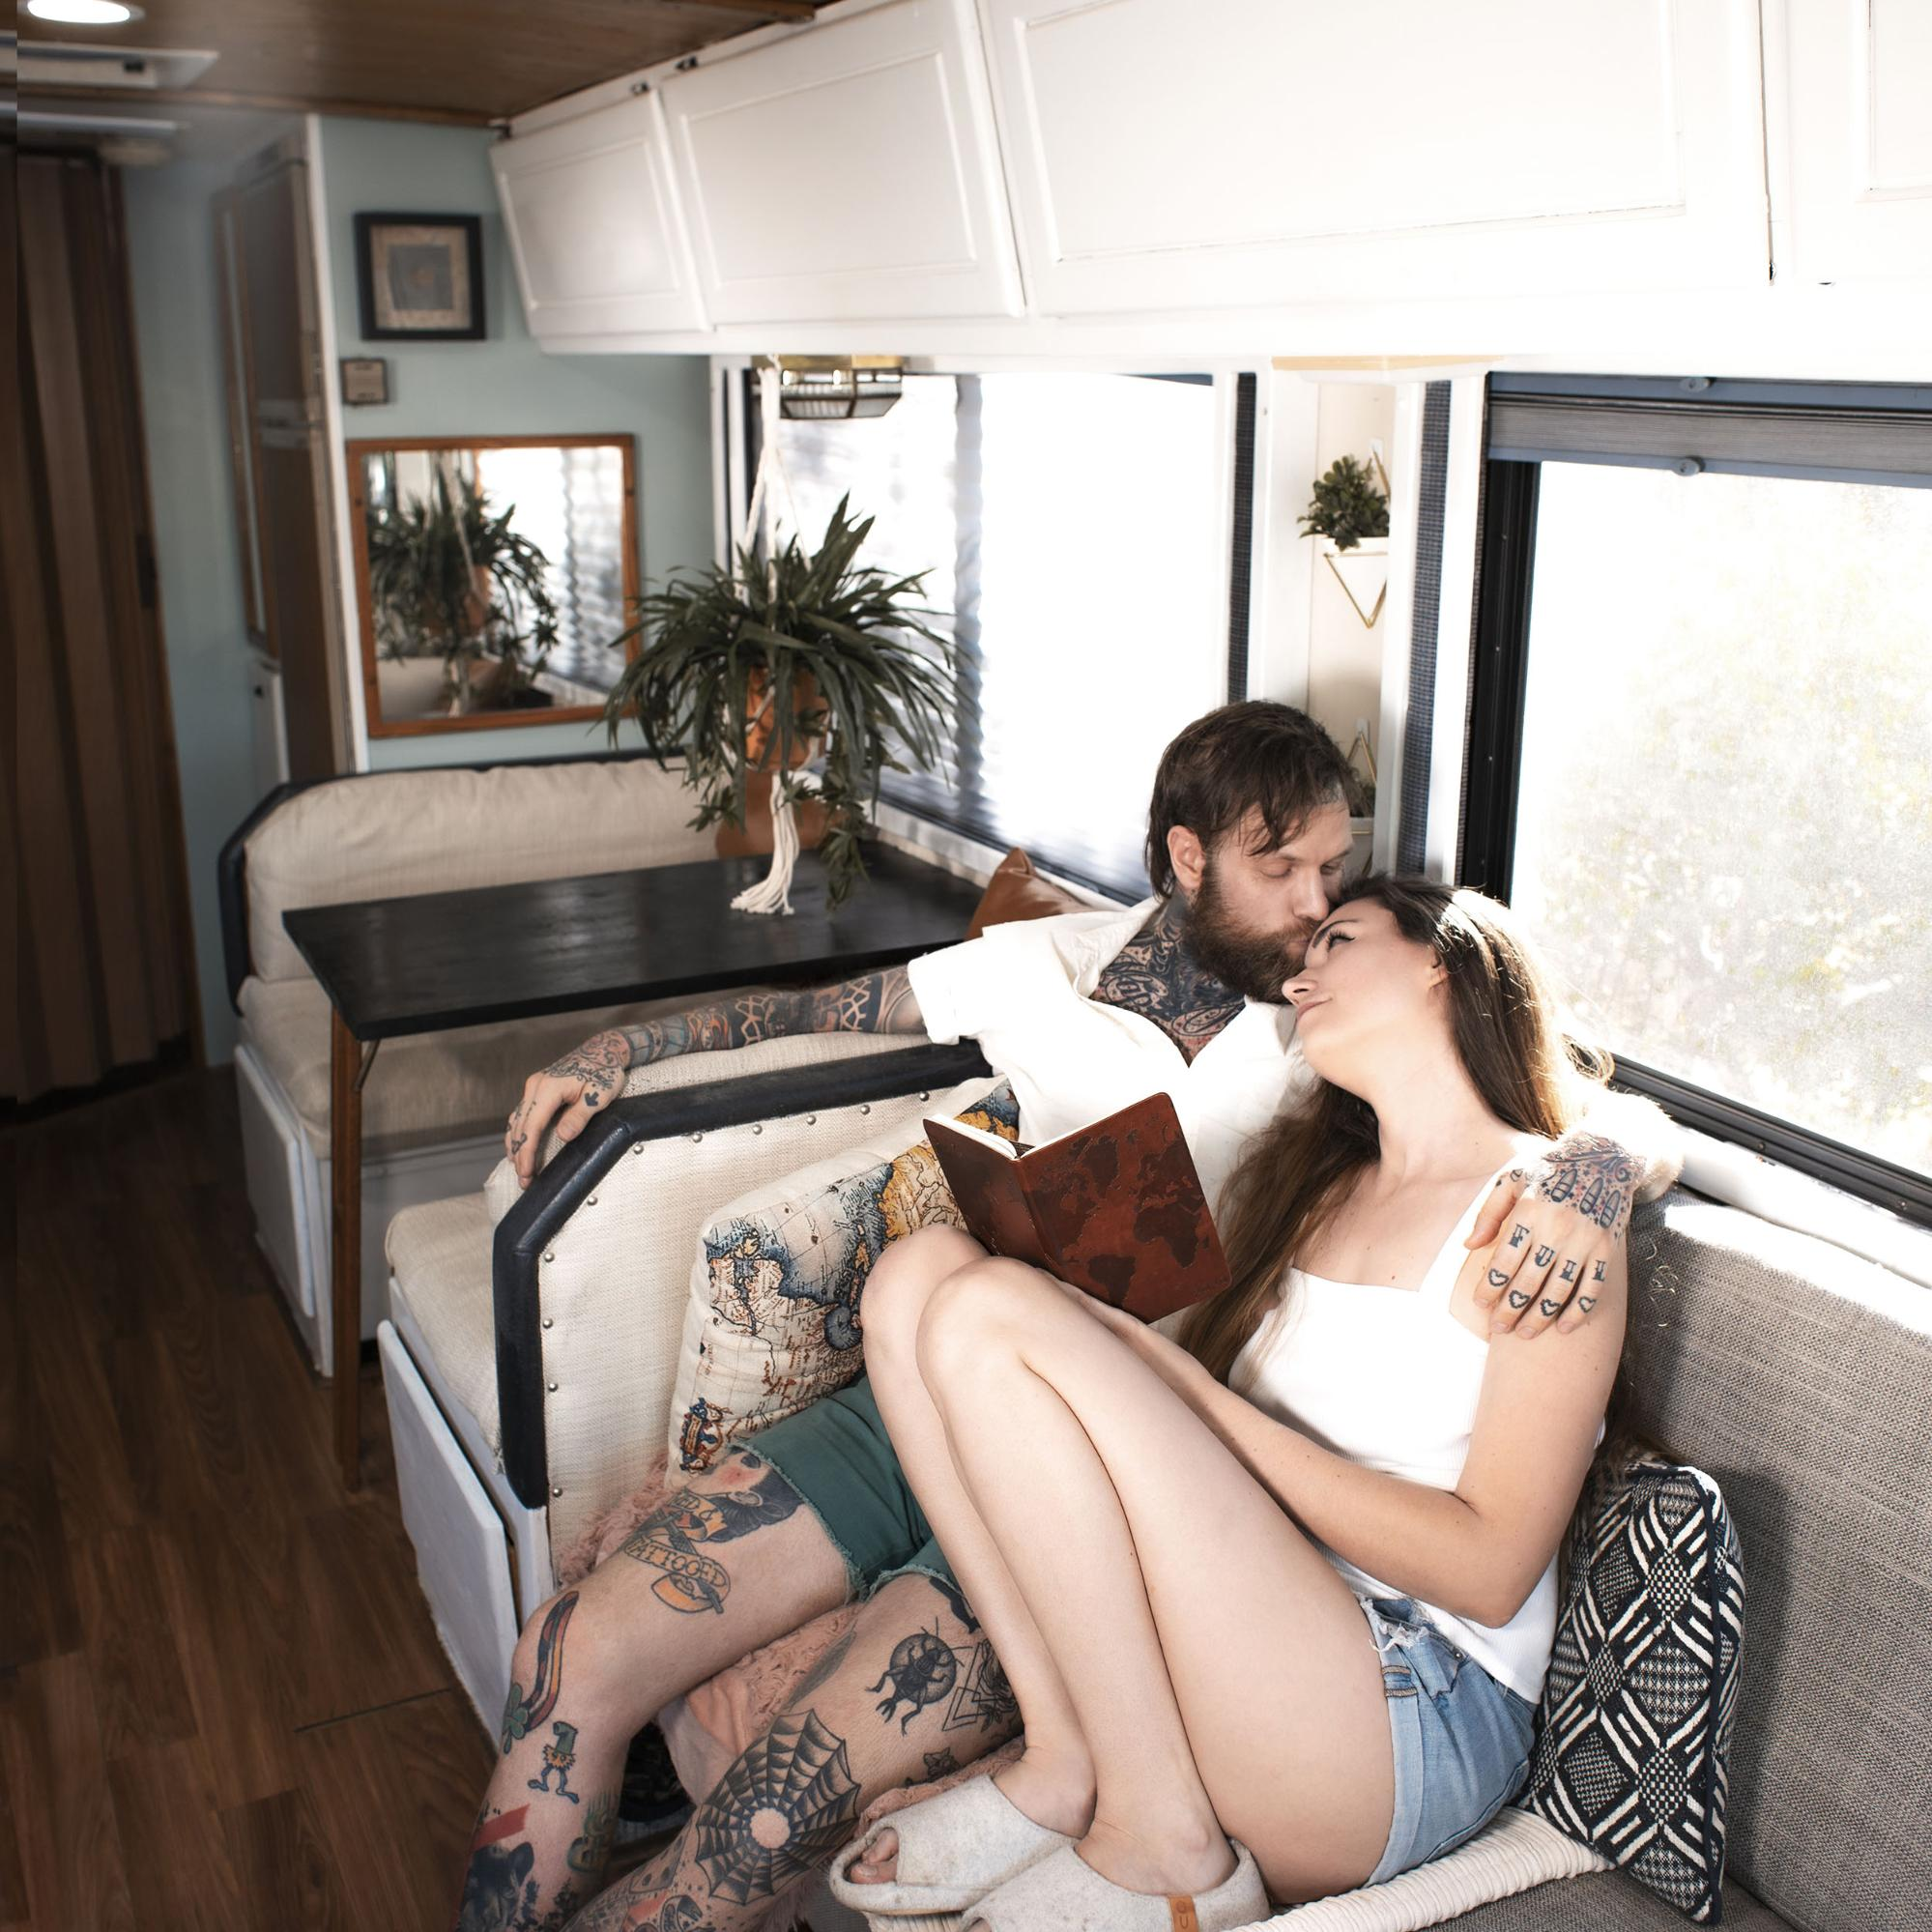 Kicking back in the Airstream doing some reading. Home is where you park it.